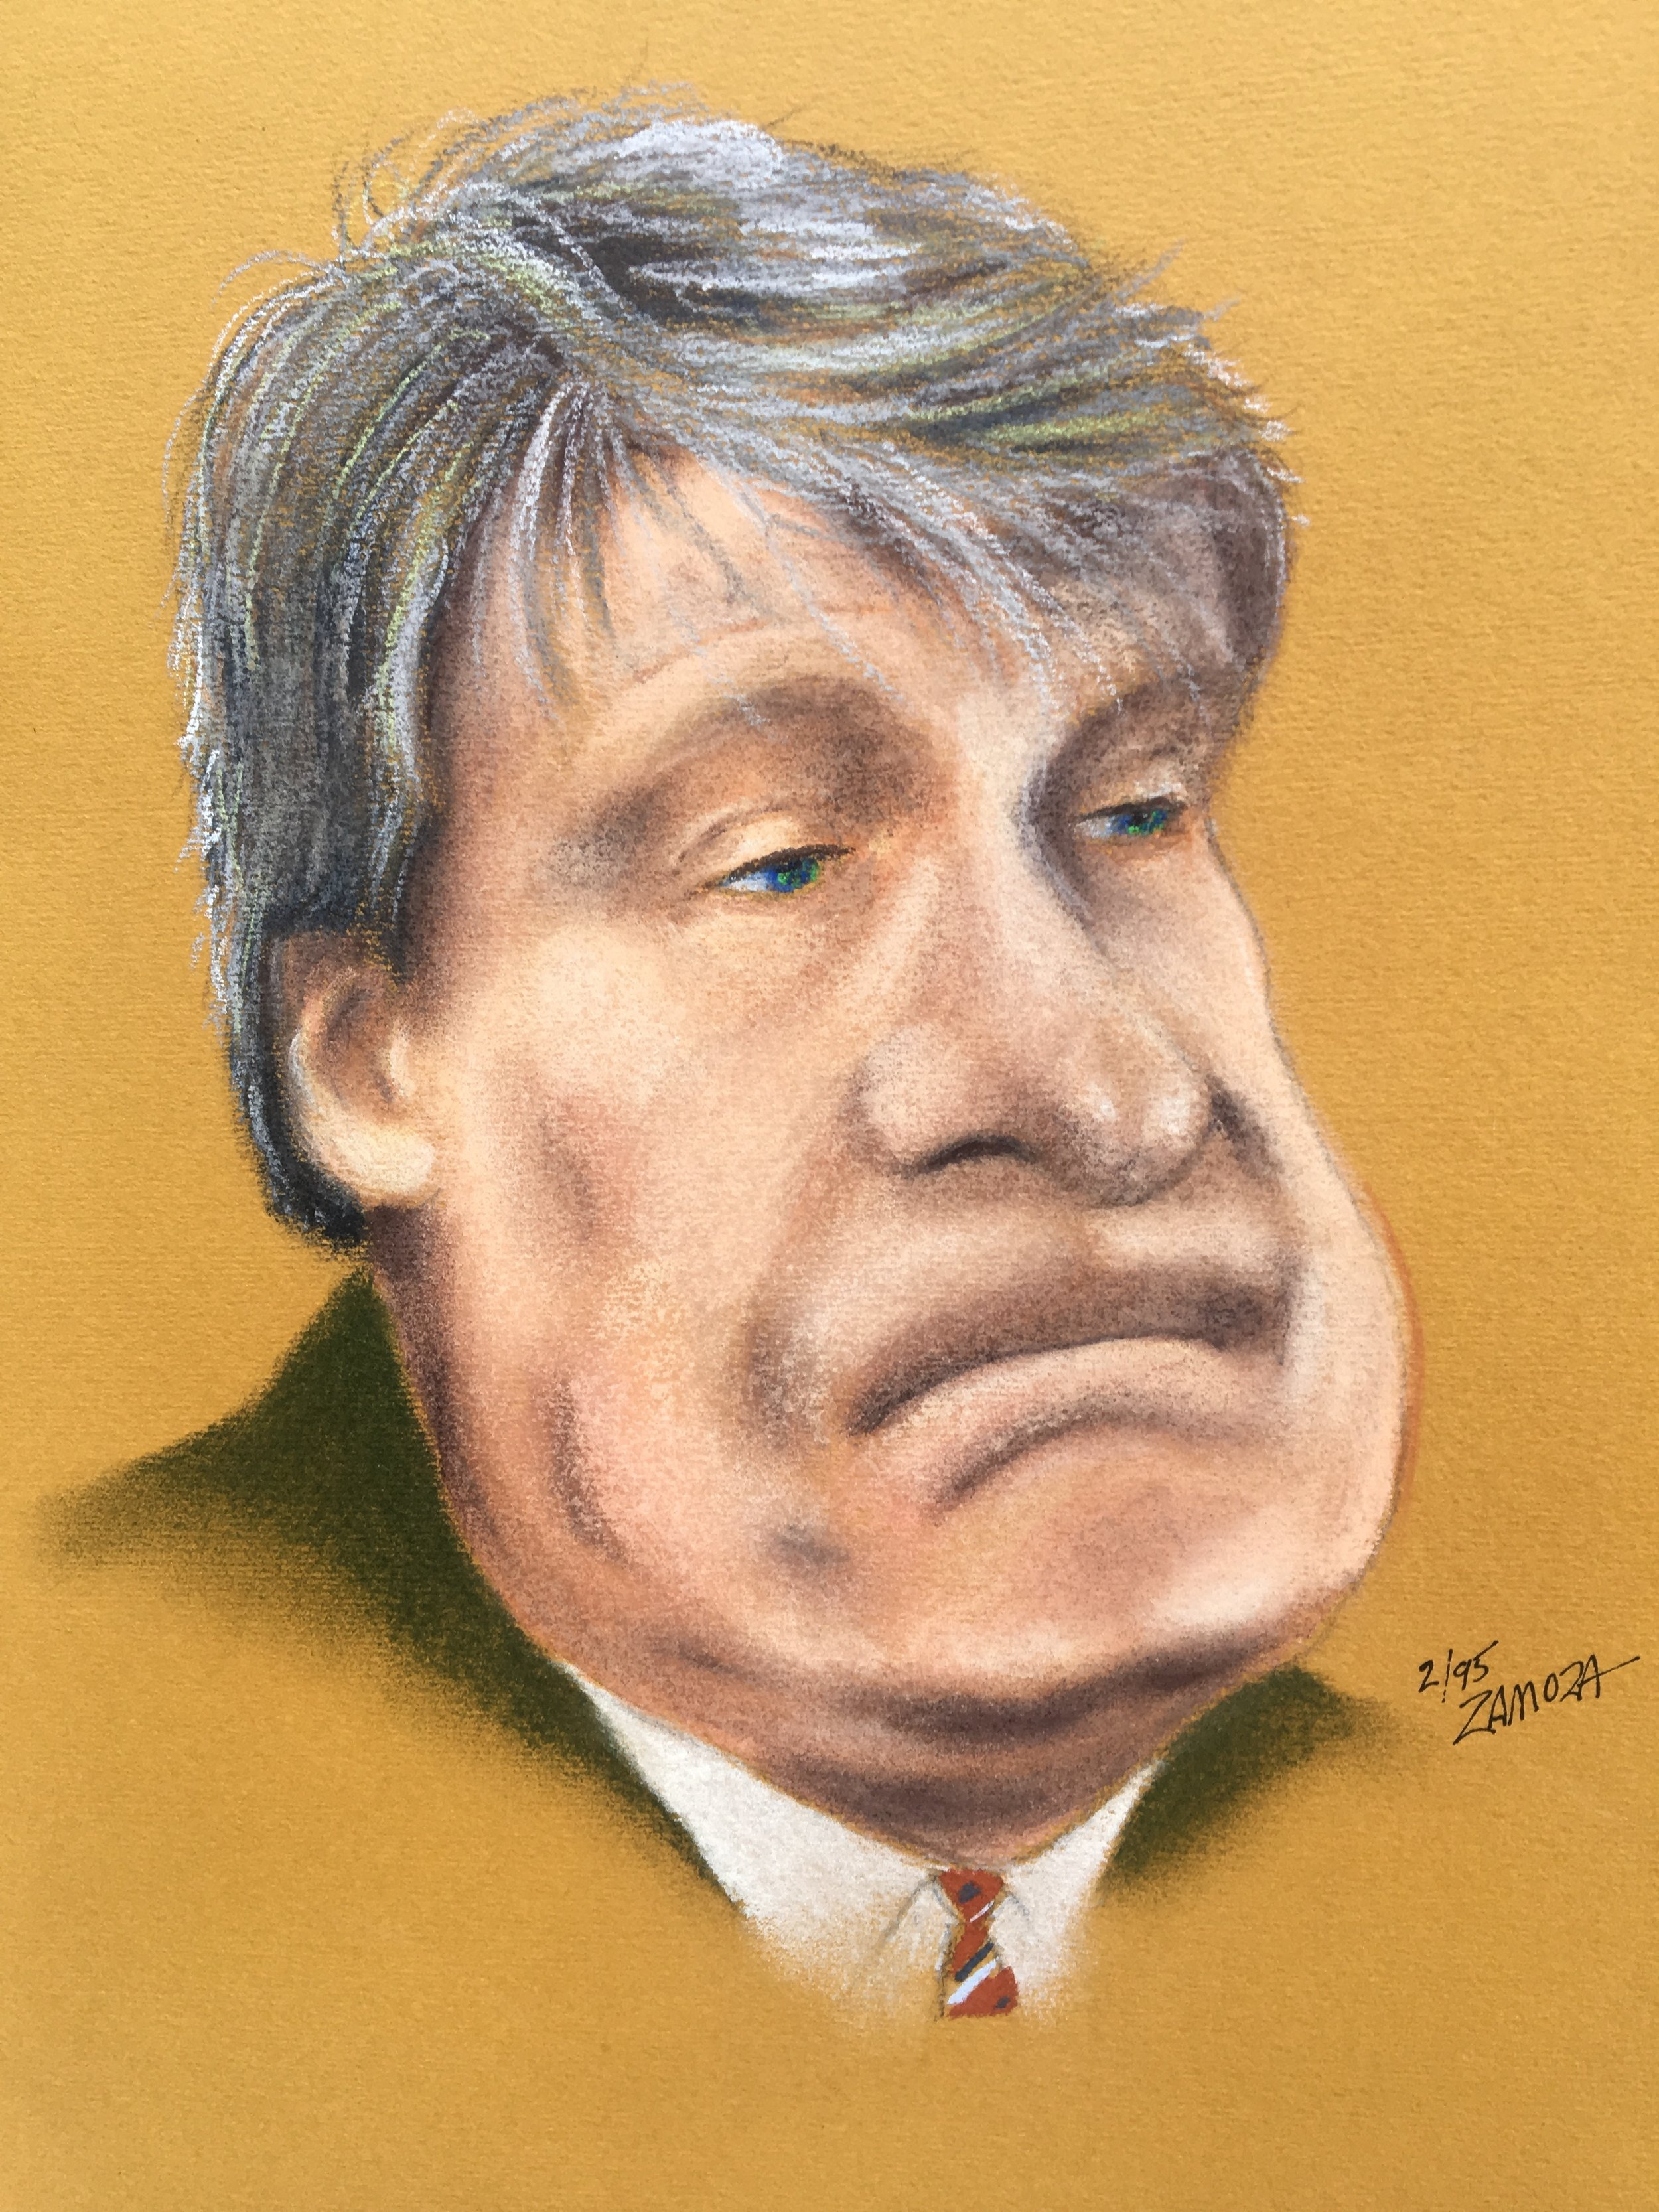 """Zamora, Gil. Caricature of  Don Nelson.  1995. Chalk pastel on colored paper, 12"""" x 14"""". Private collection."""